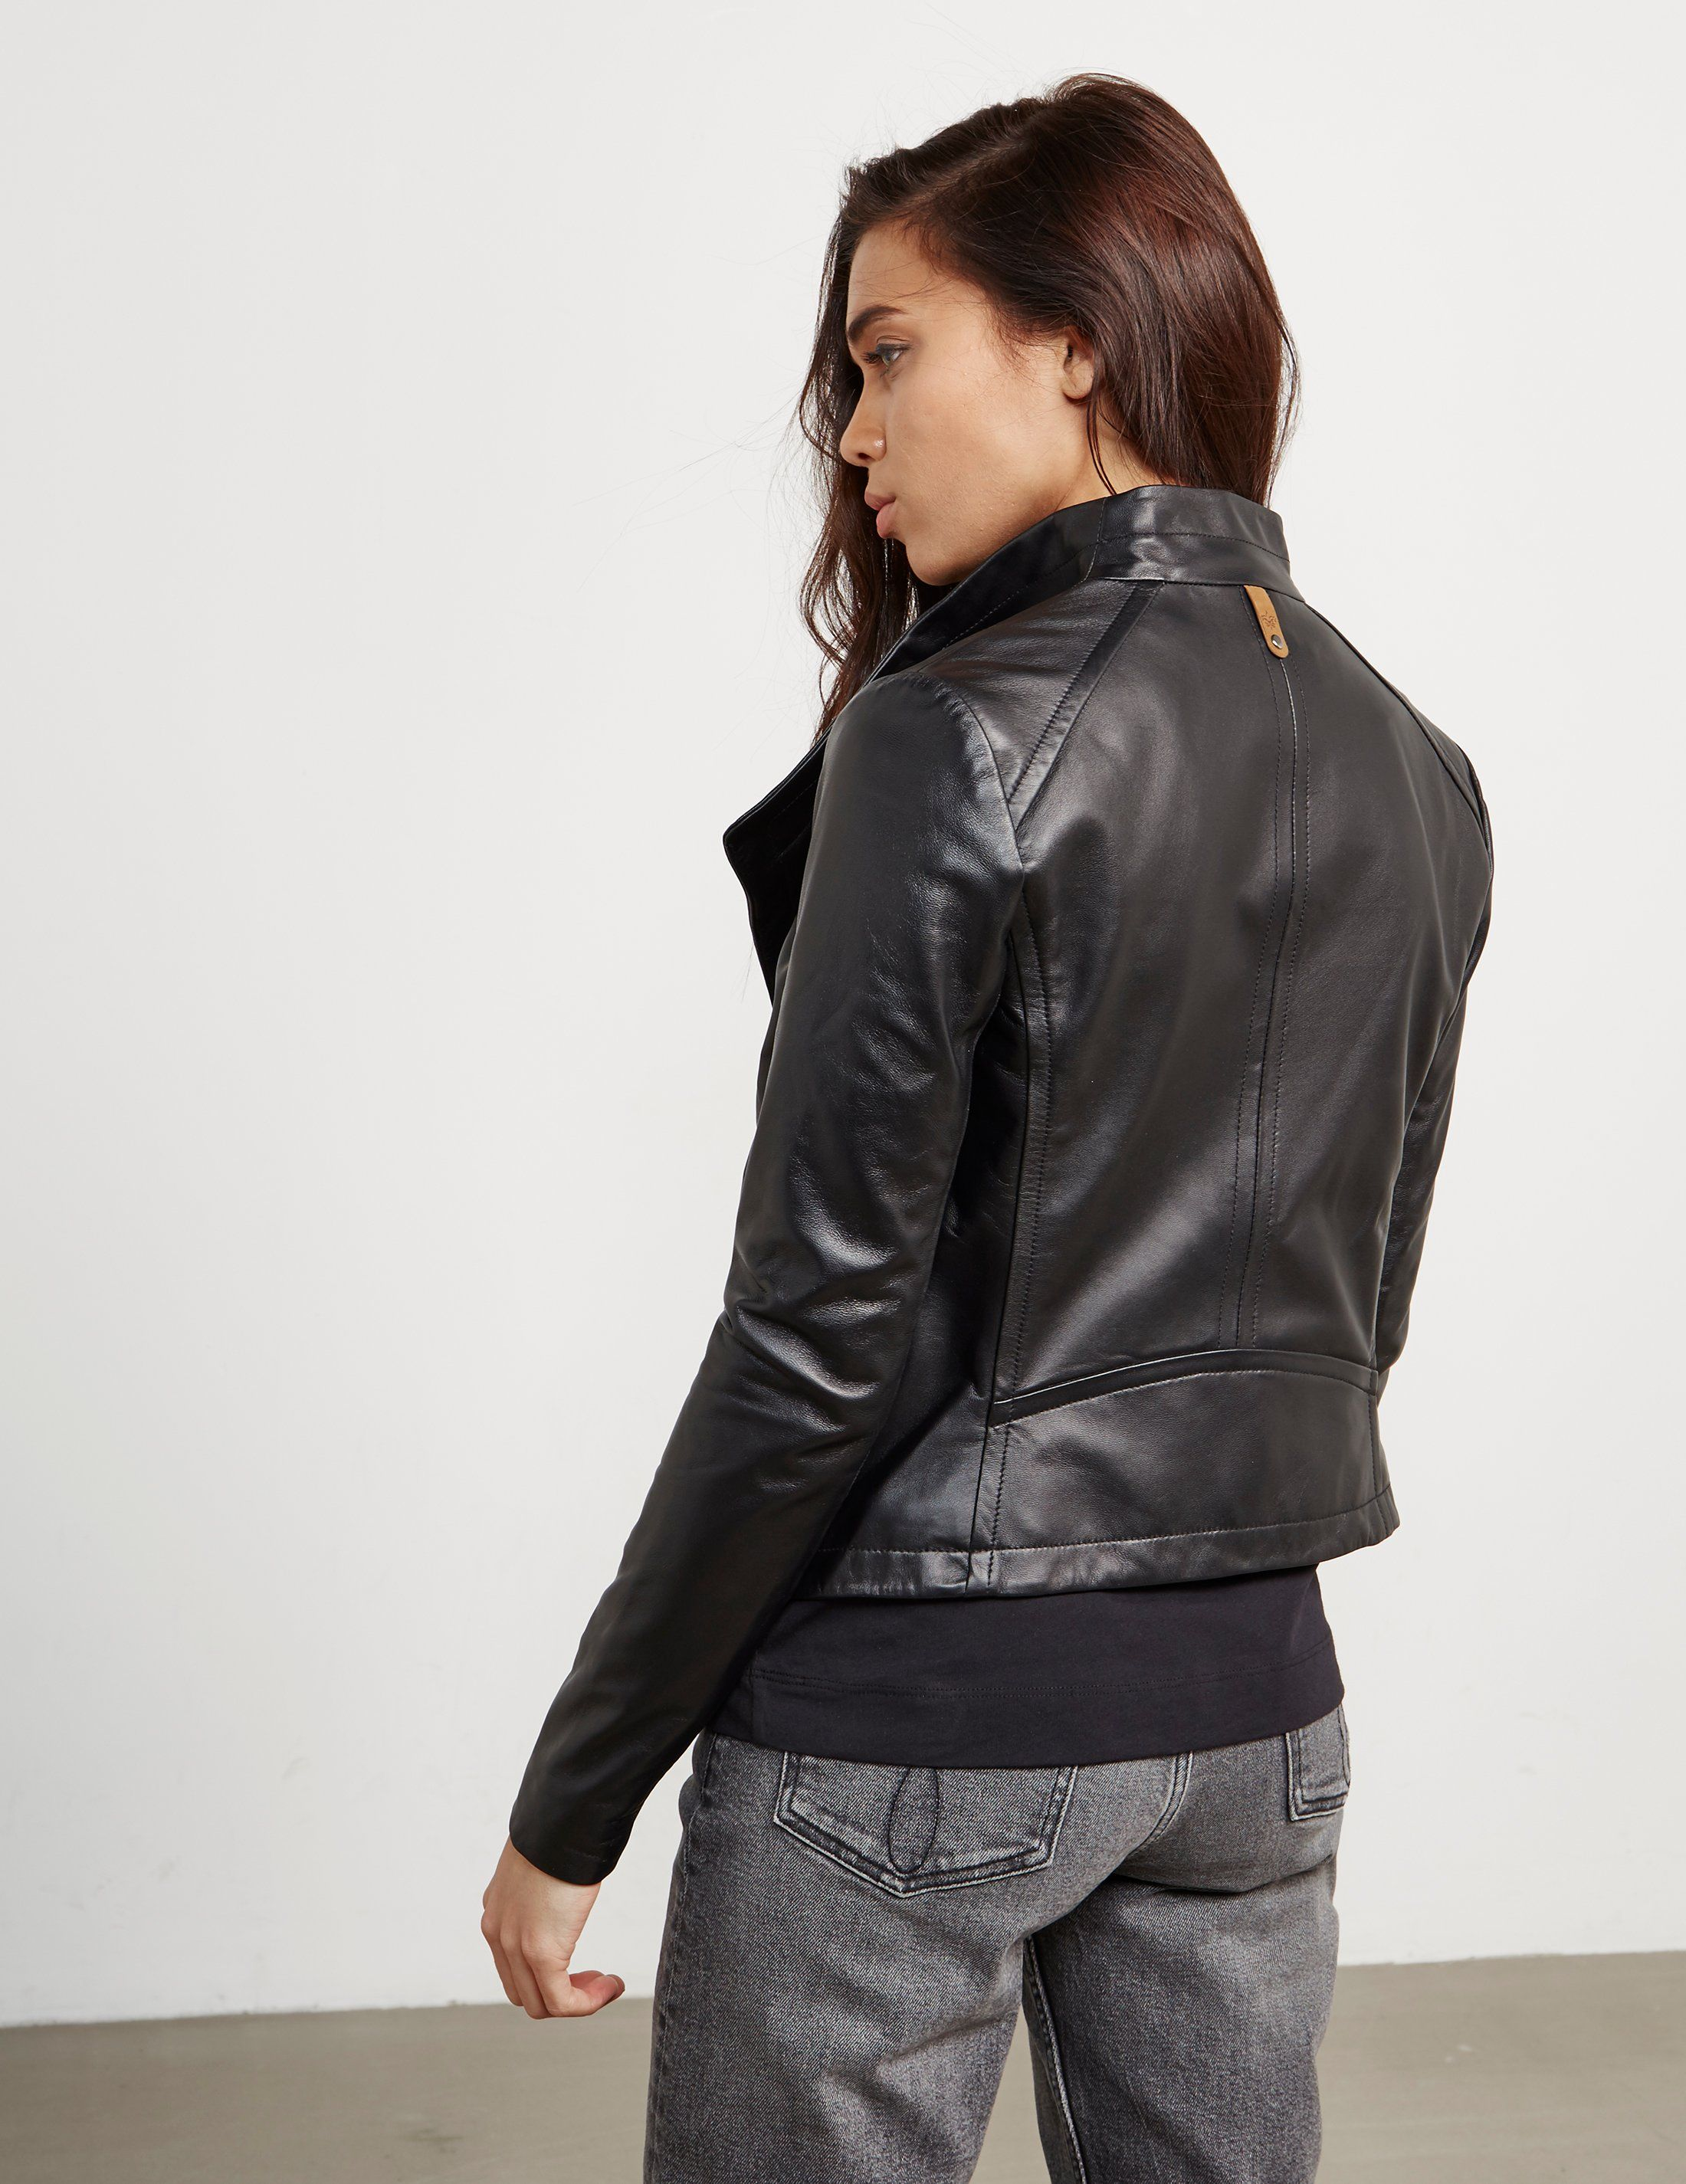 Mackage Leather Jacket - Online Exclusive